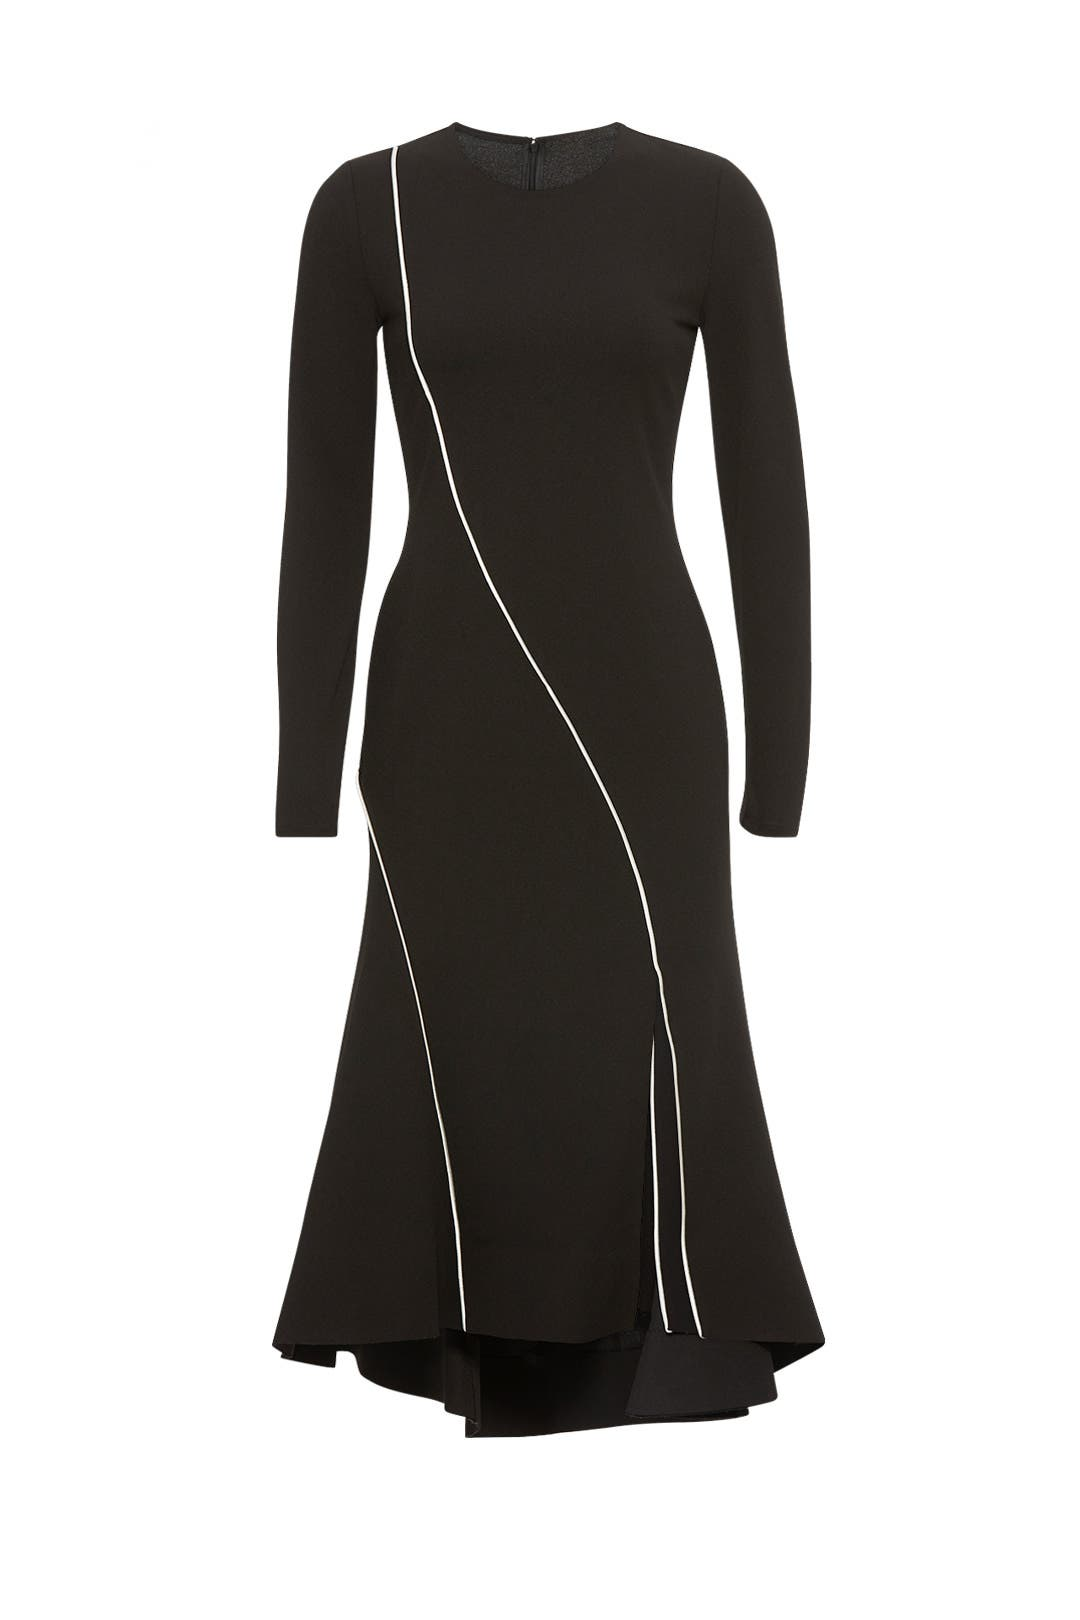 62878de7cbfb RACHEL ROY COLLECTION. Read Reviews. Midi Long Sleeve Dress